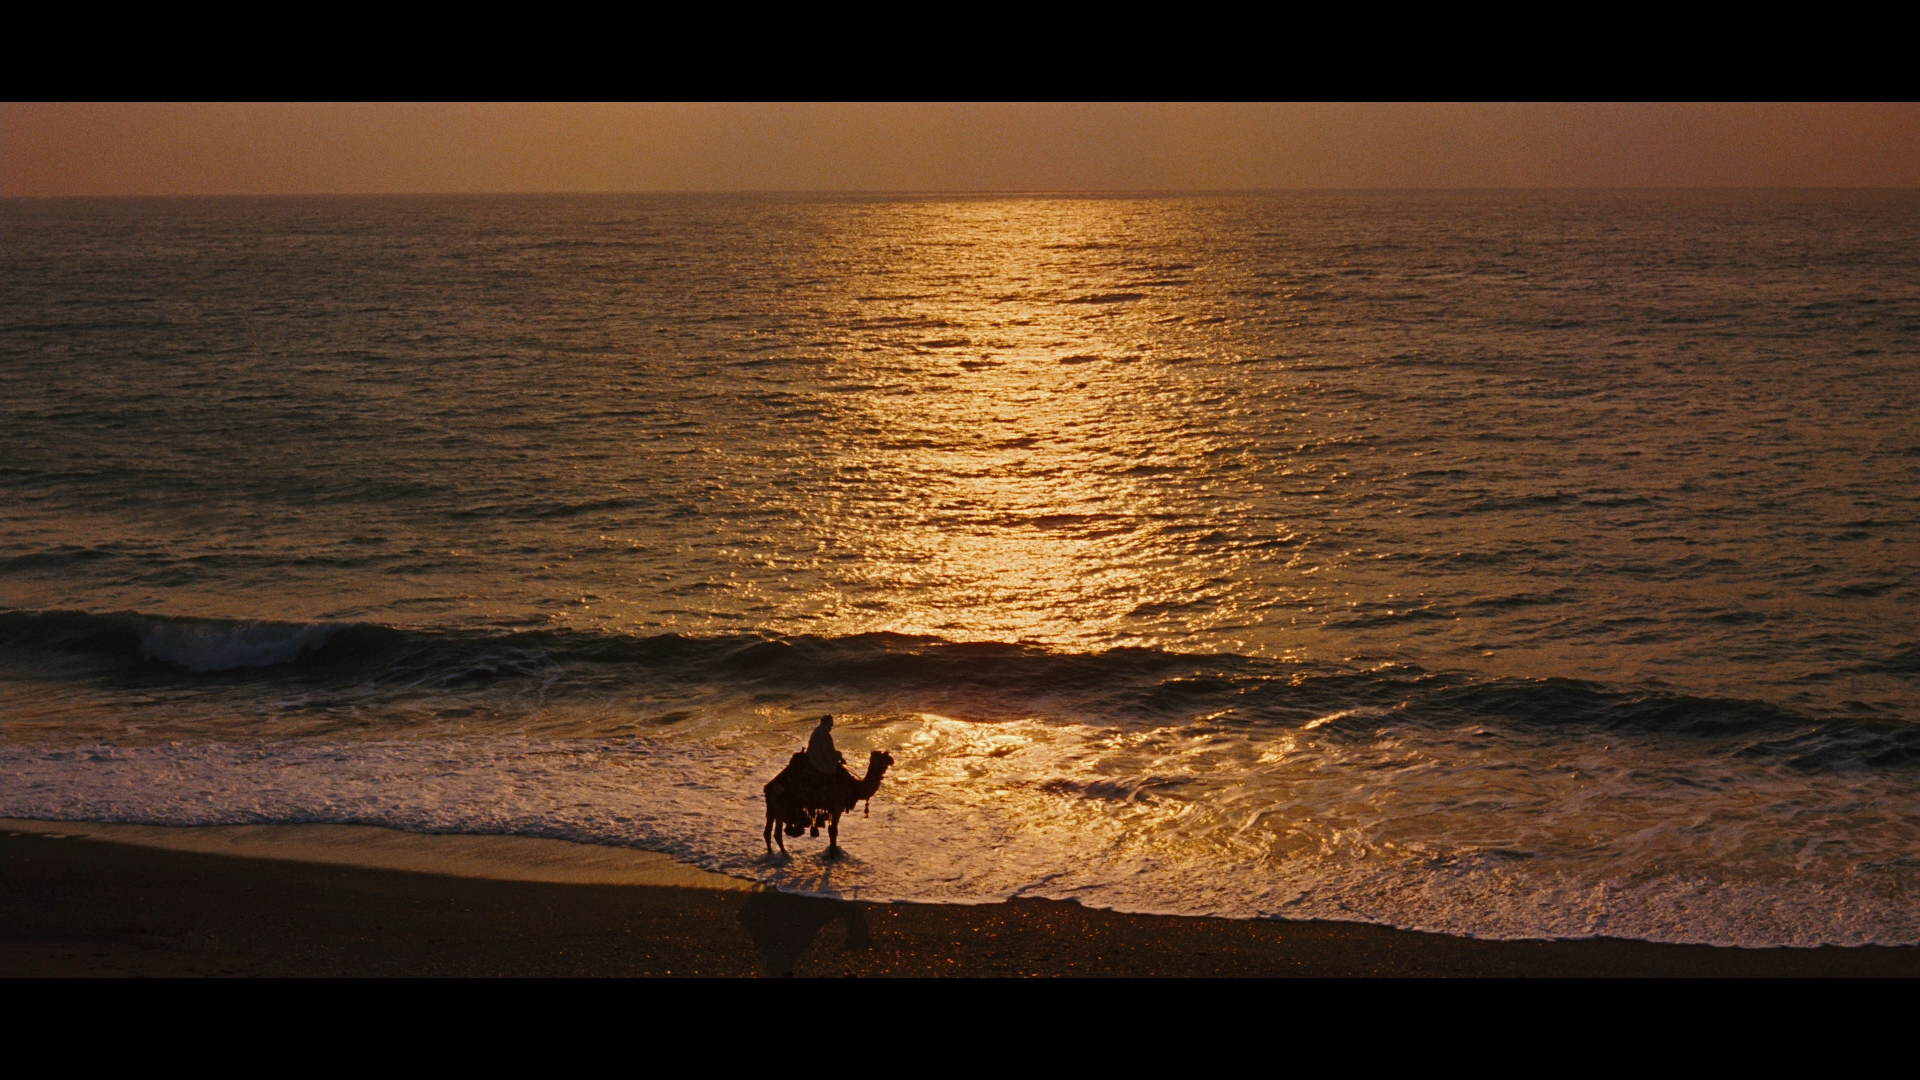 cinematography in lawrence of arabia essay Lawrence of arabia is an epic biographical adventure drama title of 1962 related to the life of t e lawrence directed by david lean, the film was produced by sam spiegel by horizon pictures.